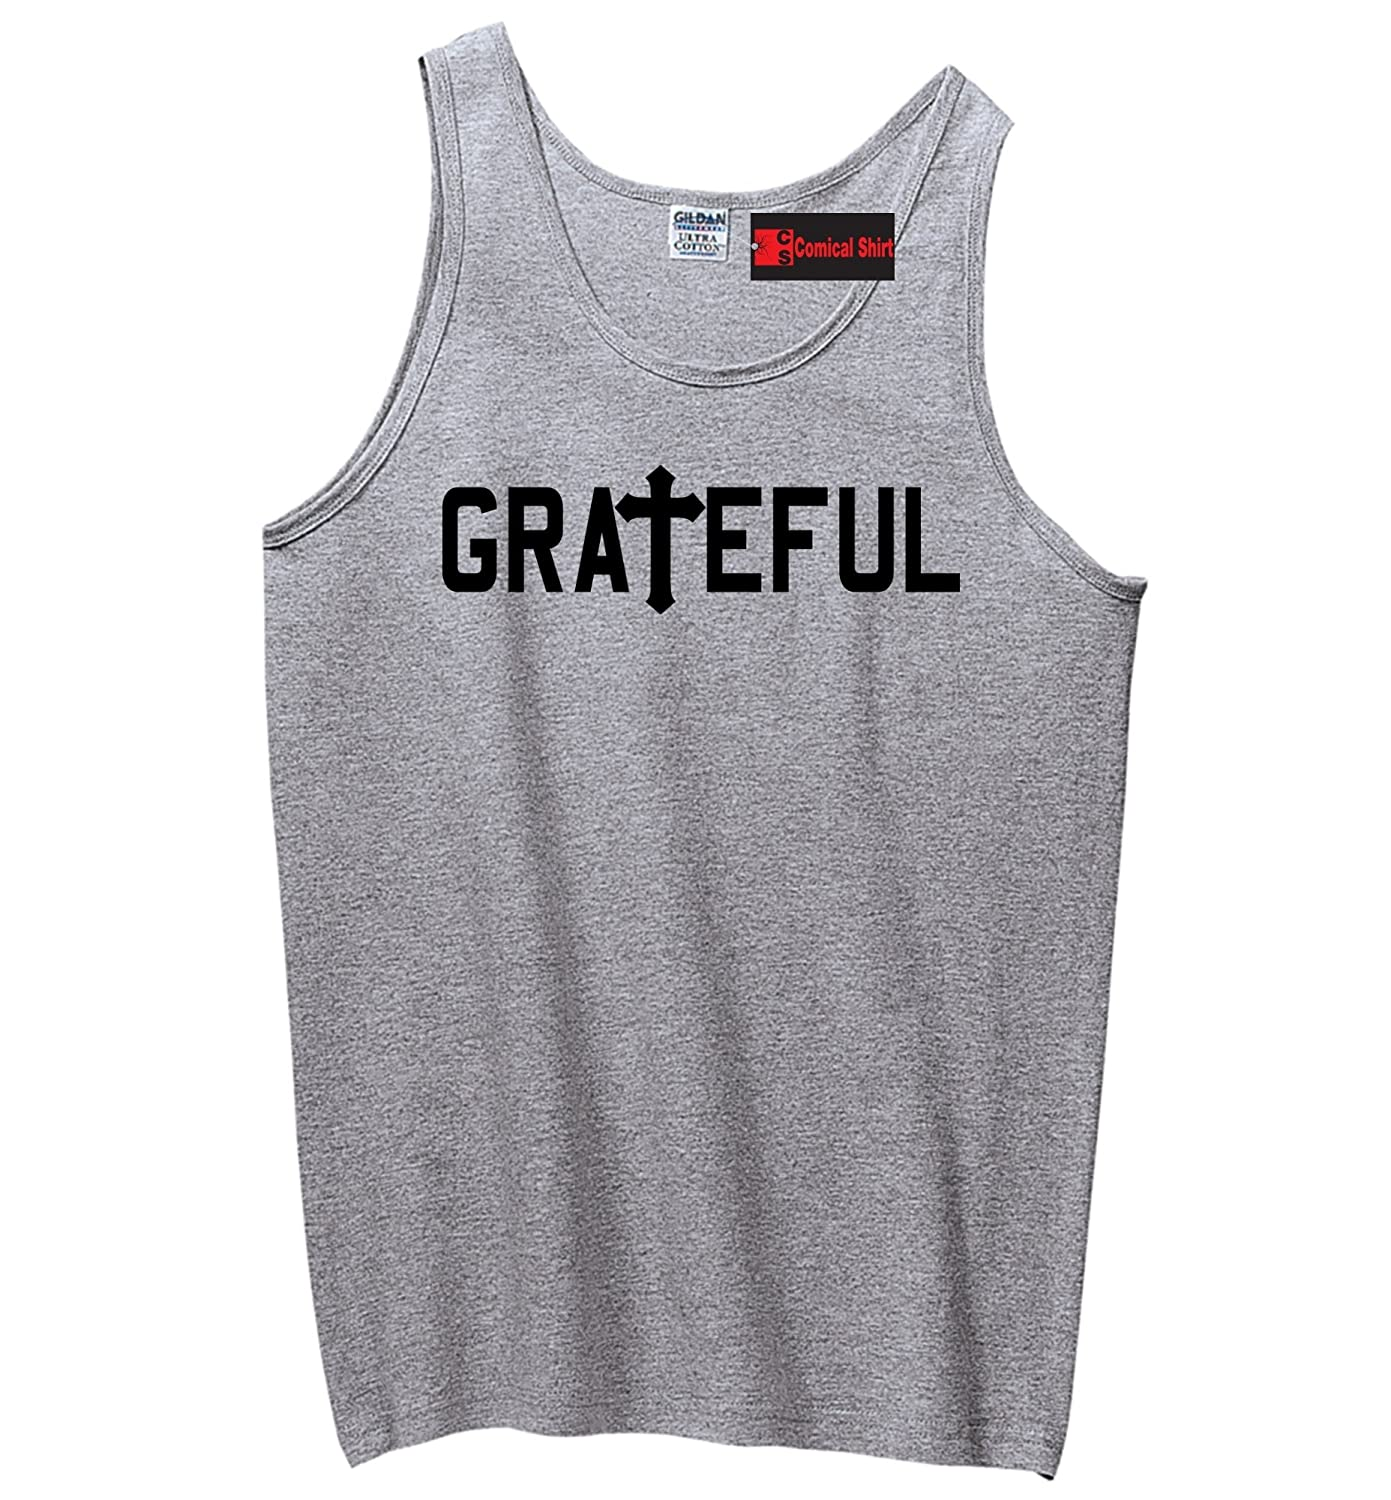 Comical Shirt Men's Grateful Christian Religious Tee Cross Jesus Tank Top